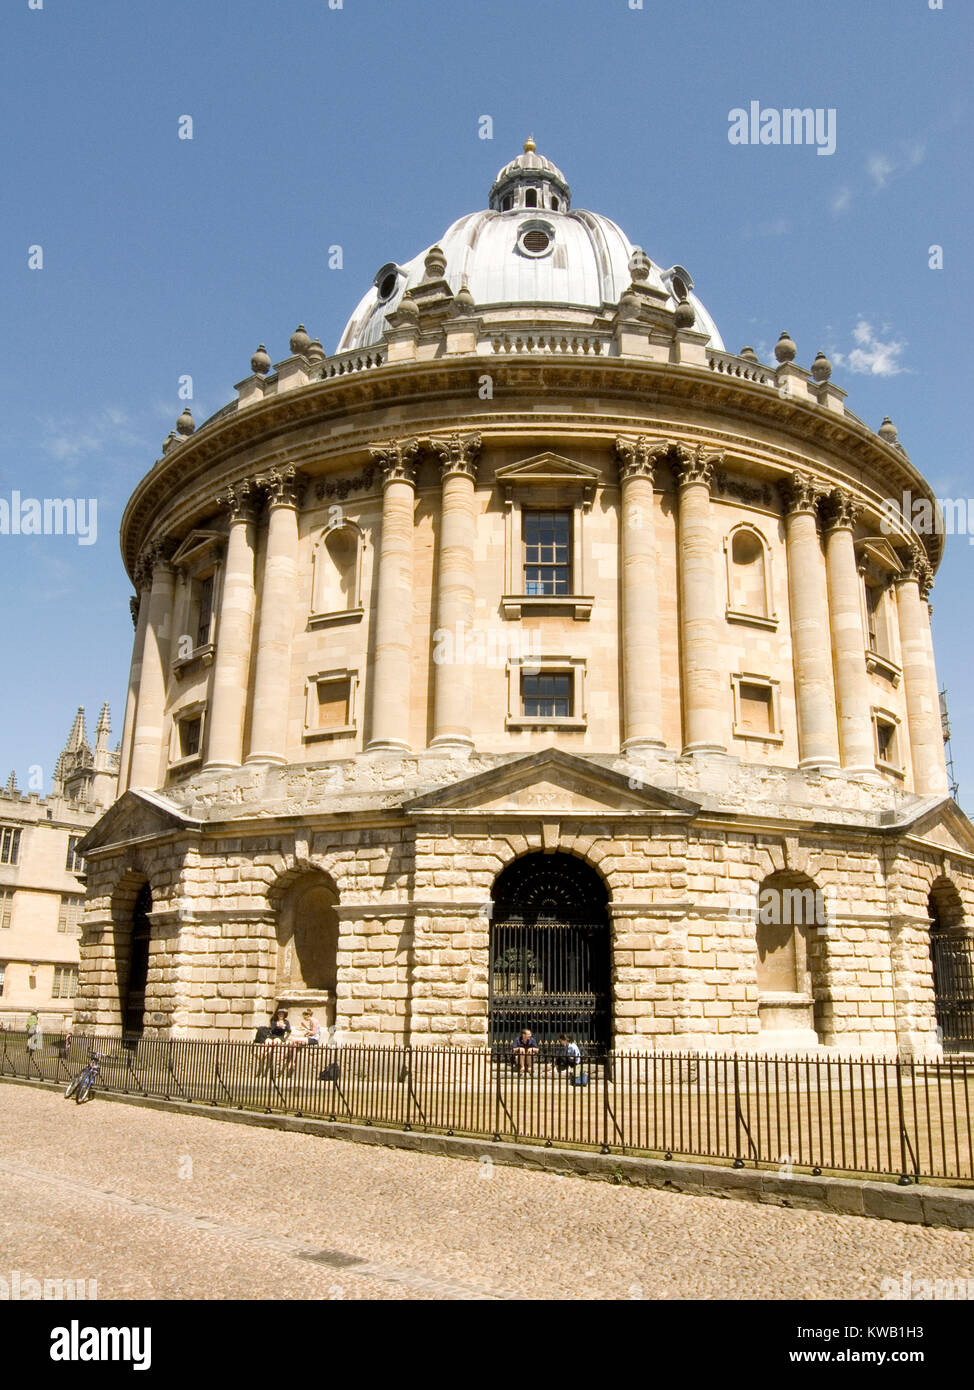 Radcliffe Camera - Stock Image